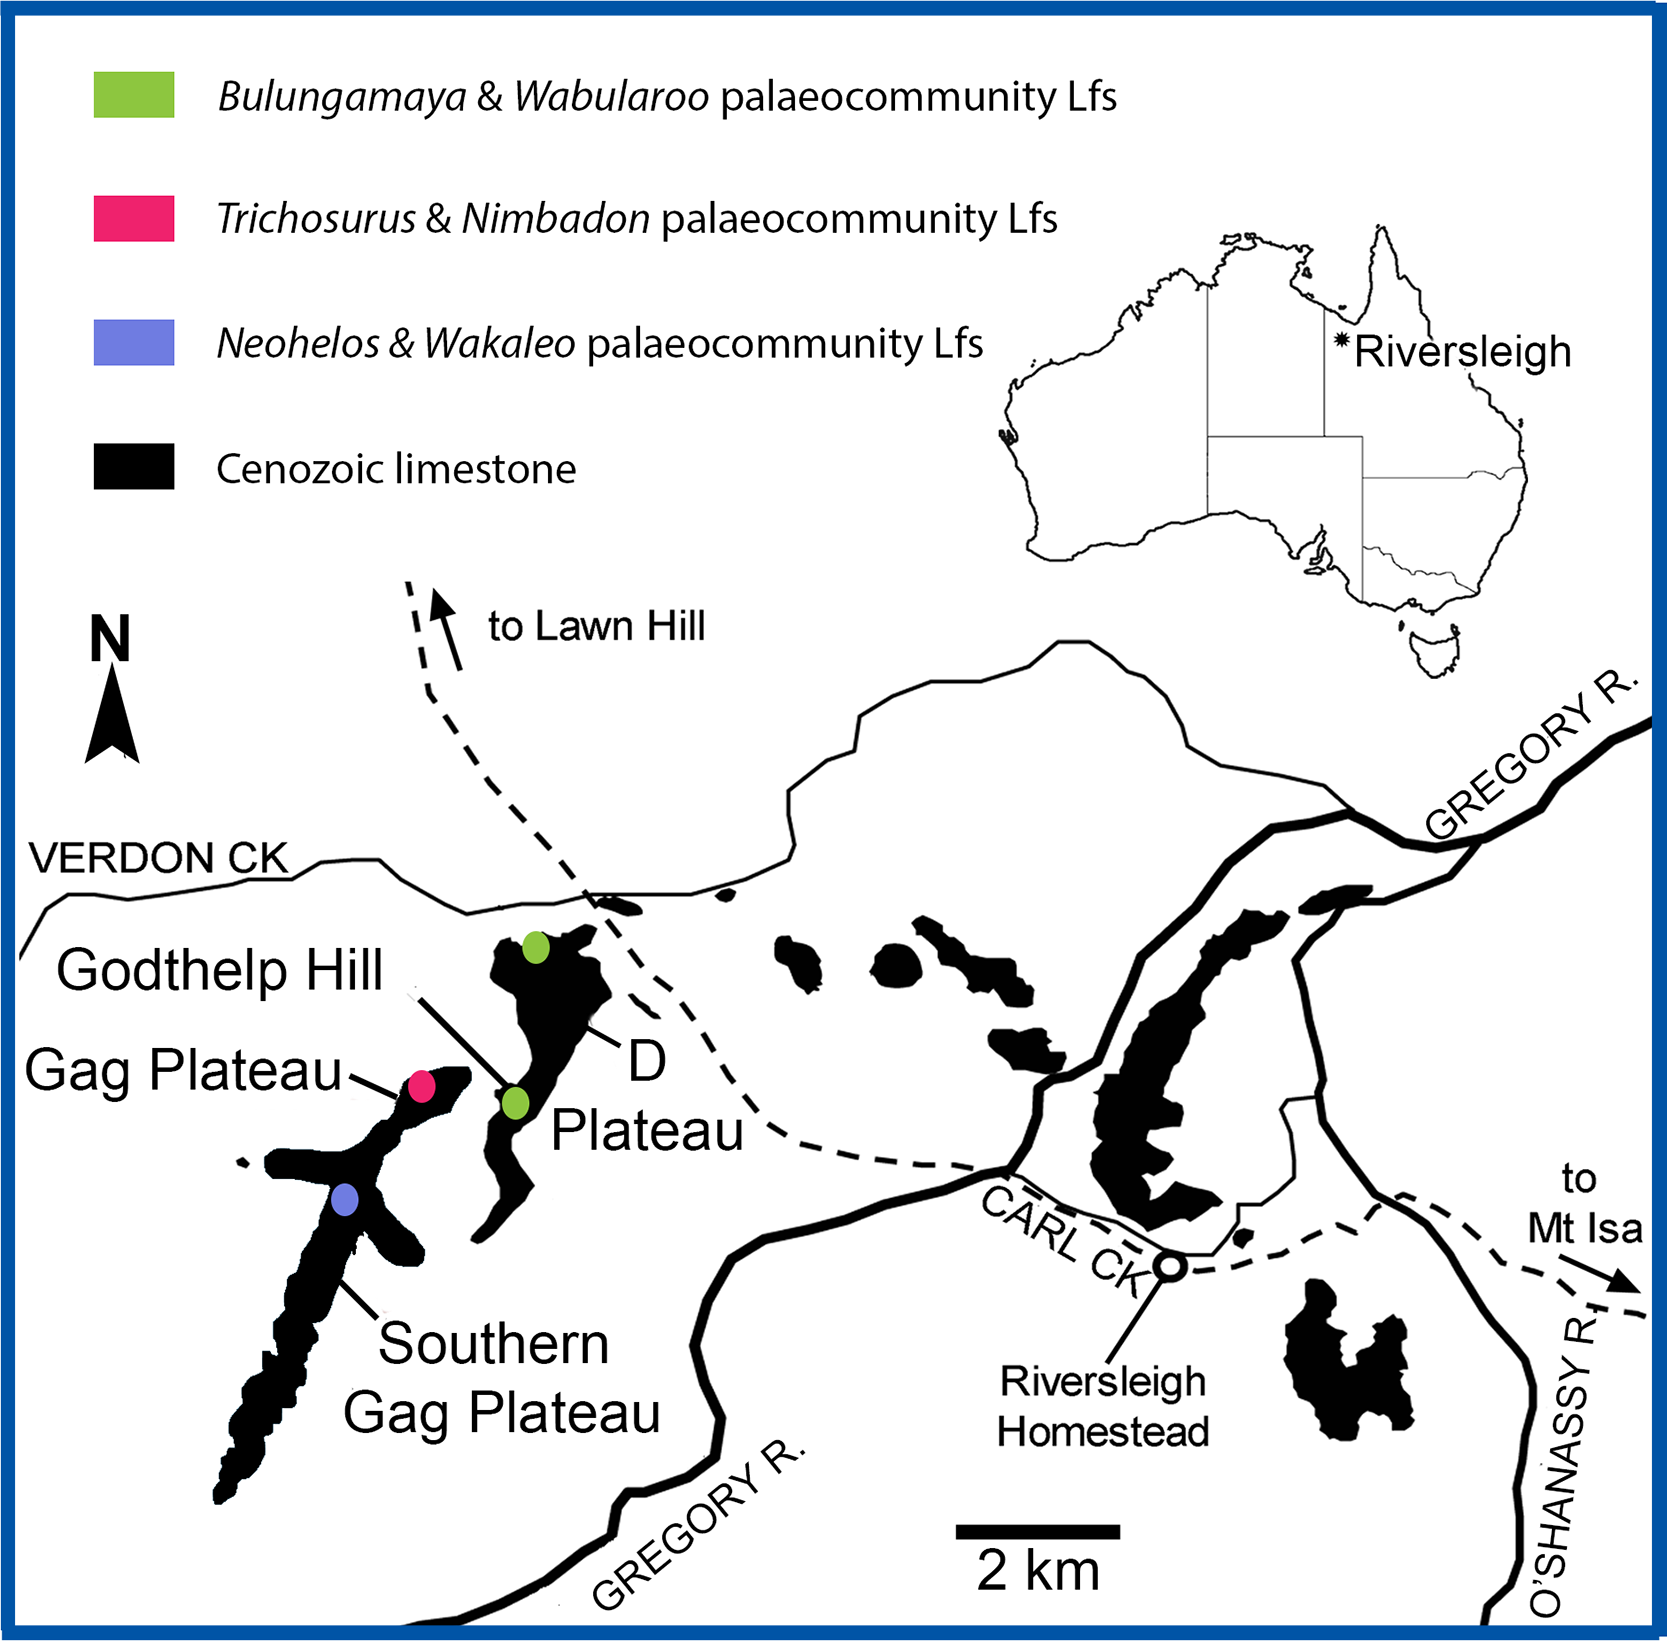 The identification of oligo miocene mammalian palaeocommunities from download full size image gumiabroncs Image collections